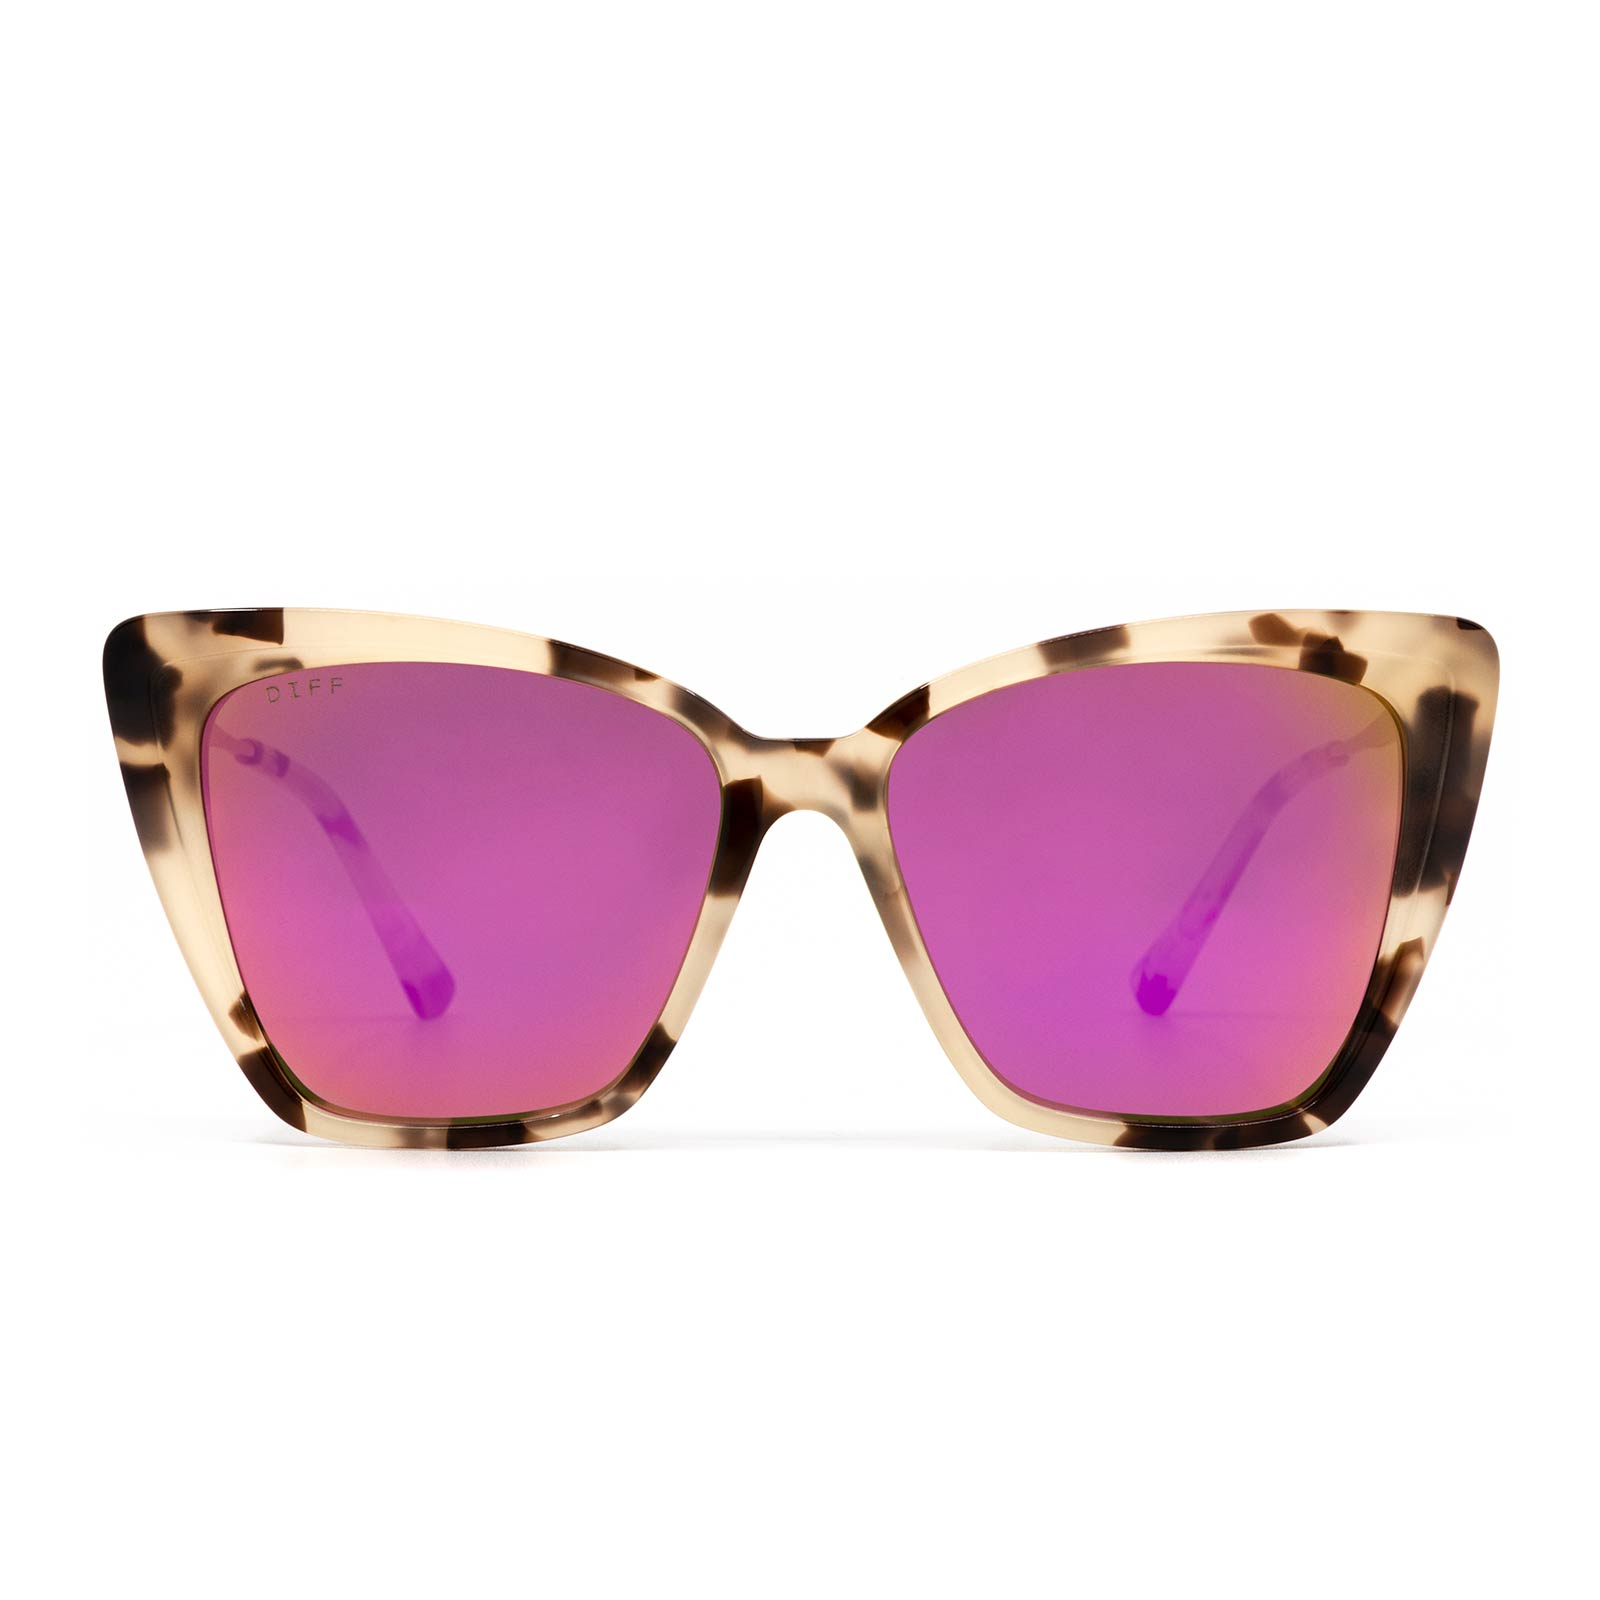 Becky II sunglasses with cream tortoise frame and pink mirror lens- front view